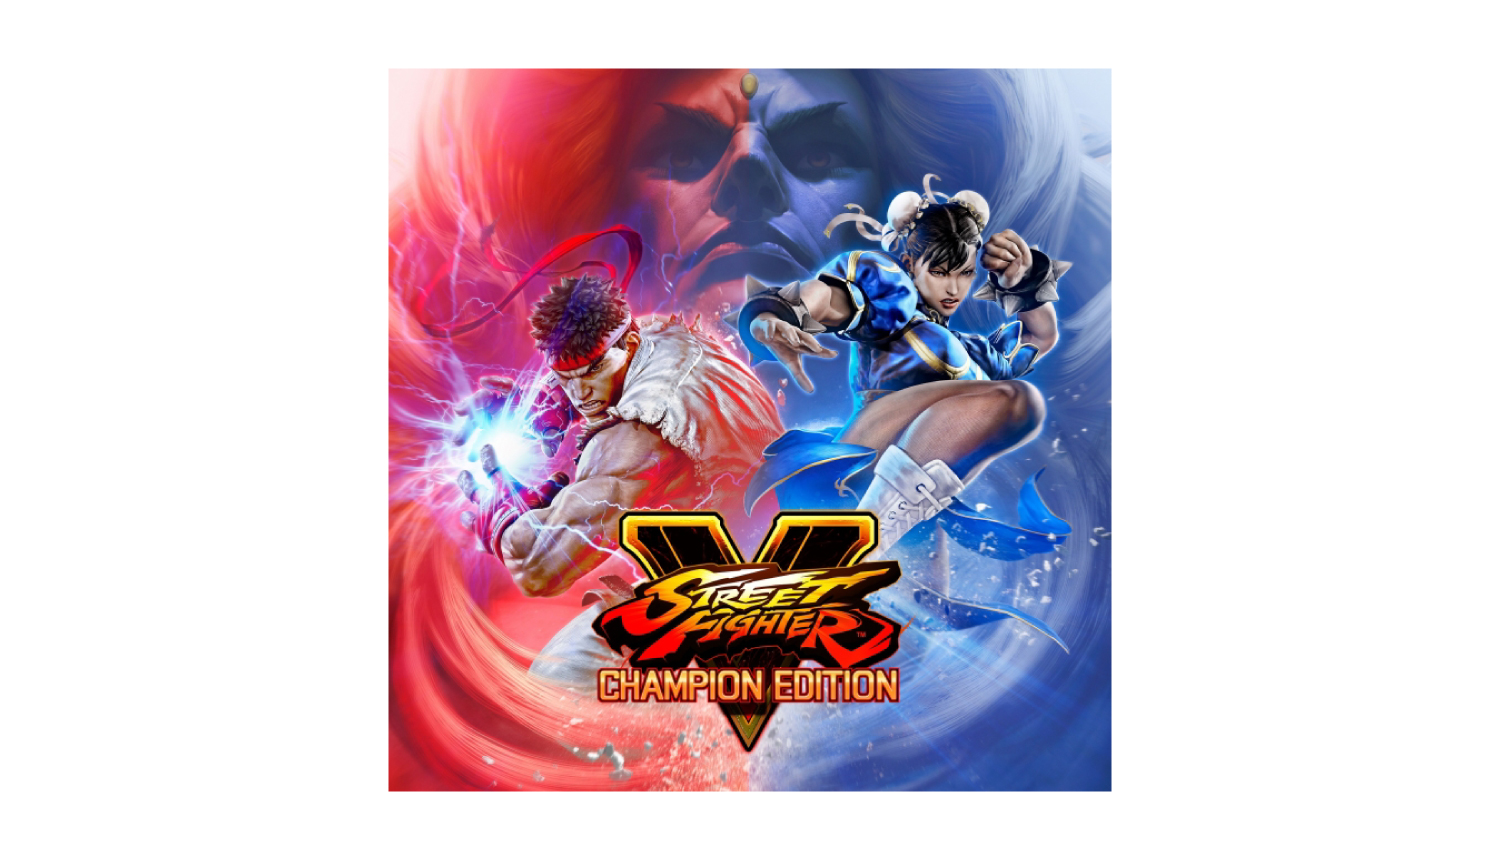 ストリートファイターV-STREET-FIGHTER-V-CHAMPION-EDITION-free-無料配信_-bana–